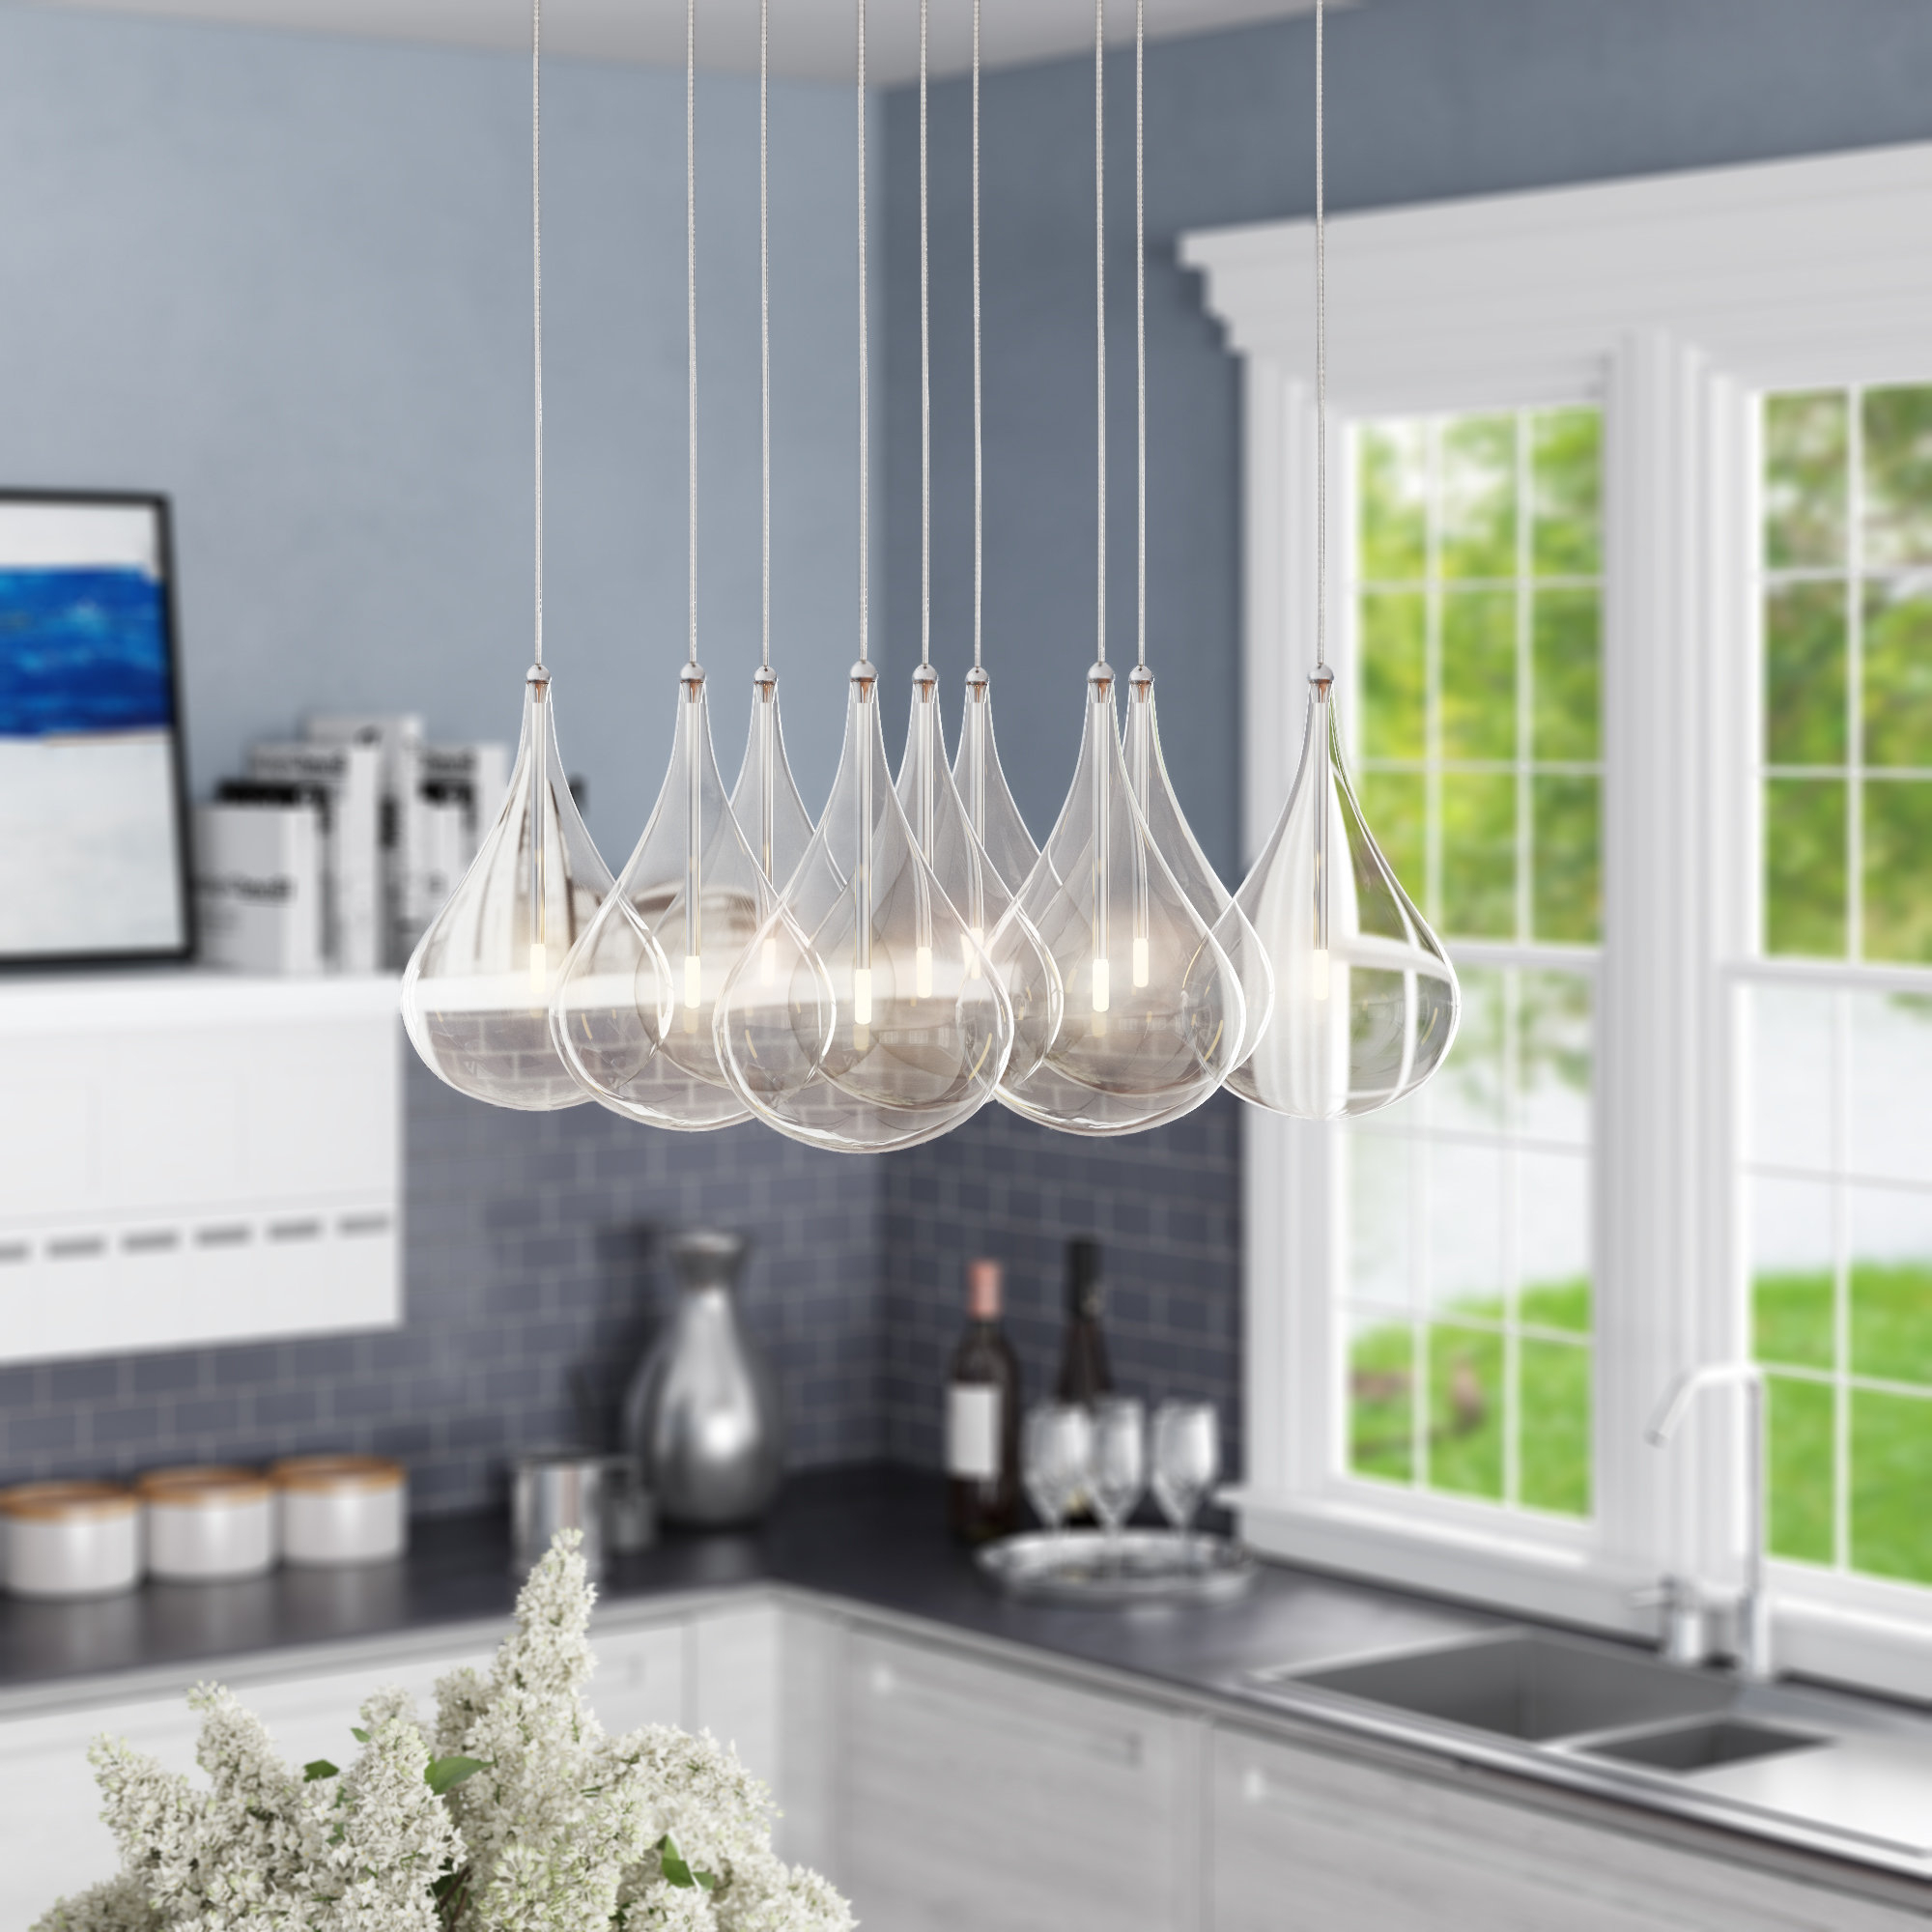 Neal 9 Light Kitchen Island Pendant Throughout Well Known Neal 5 Light Kitchen Island Teardrop Pendants (View 7 of 20)